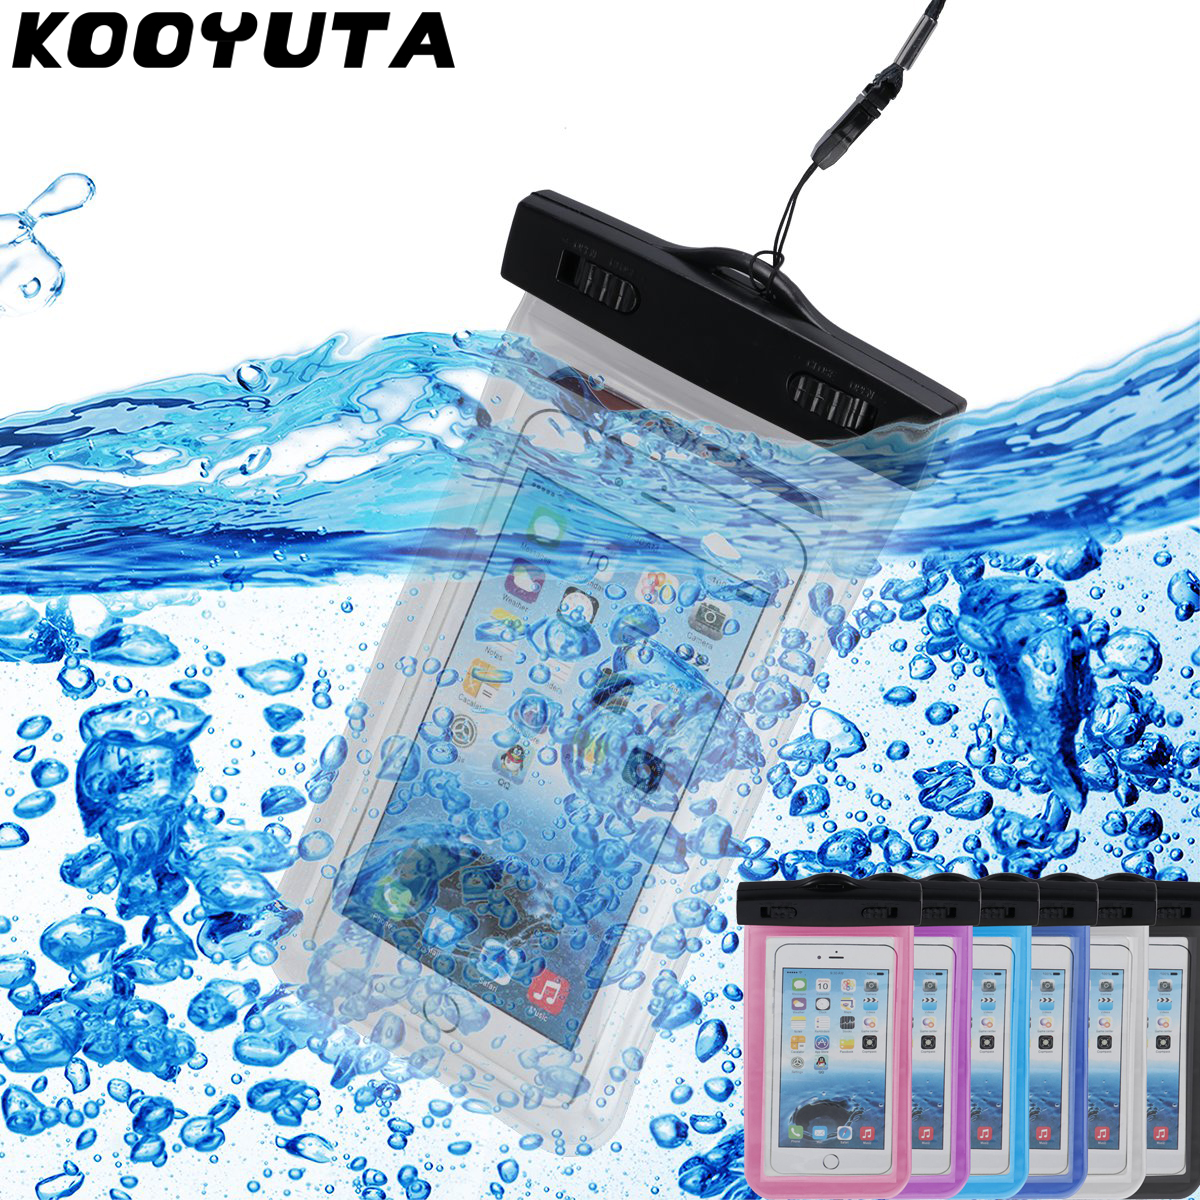 Hot Sale Transparent Waterproof Dirtproof Underwater Dry Case Cover For Iphone 5 5S 6 6S 7 Plus/Samsung/LG/Xiaomi Dry Pouch